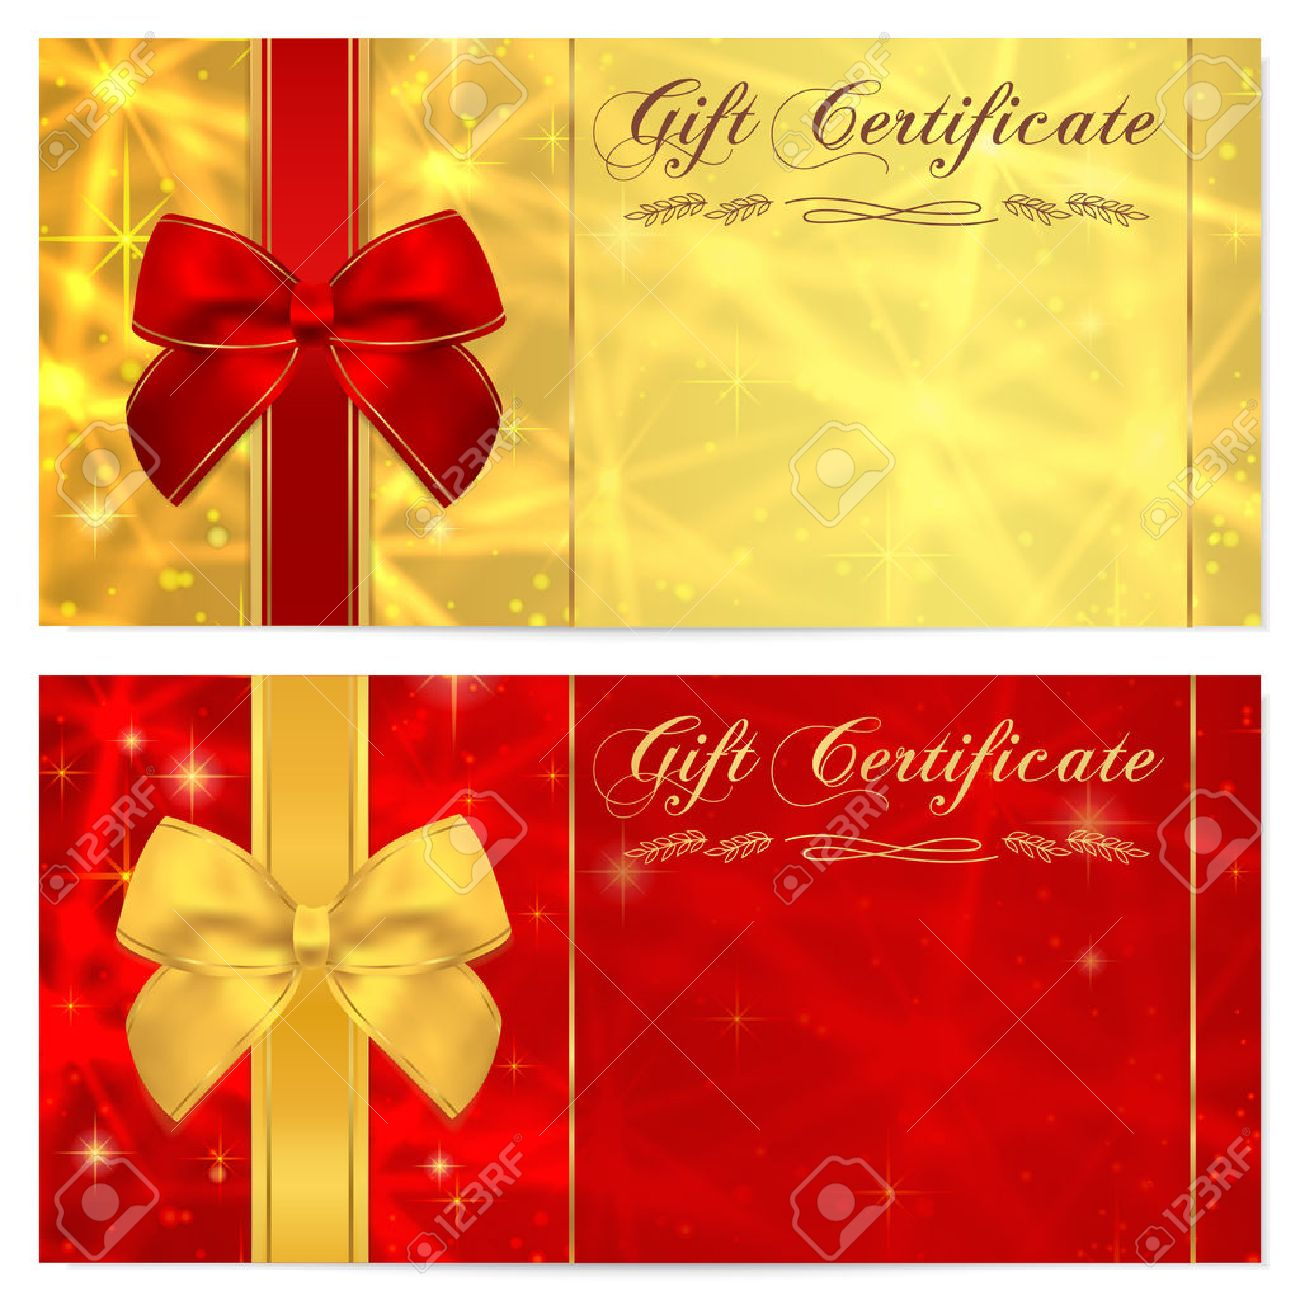 xmas voucher stock photos pictures 13 427 royalty xmas xmas voucher gift certificate voucher coupon invitation or gift card template